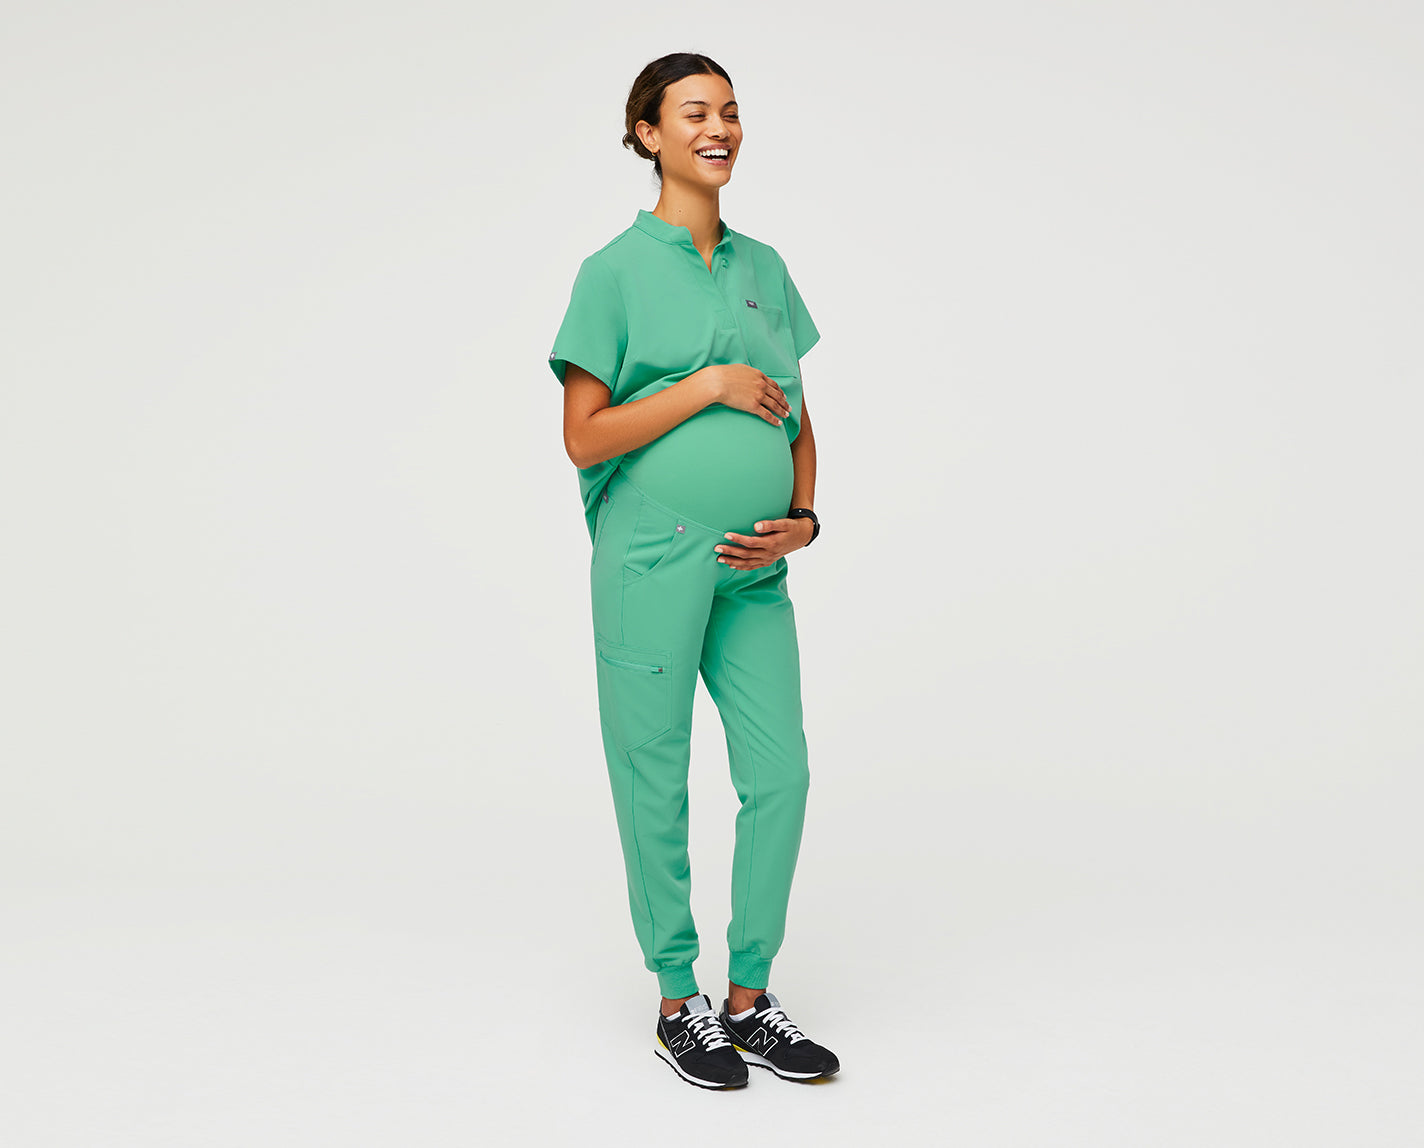 Your favorite joggers just got a maternity makeover, baby! Featuring an extremely soft knit maternity waistband, five functional pockets and the same high-performing, comfortable fit you know and love.